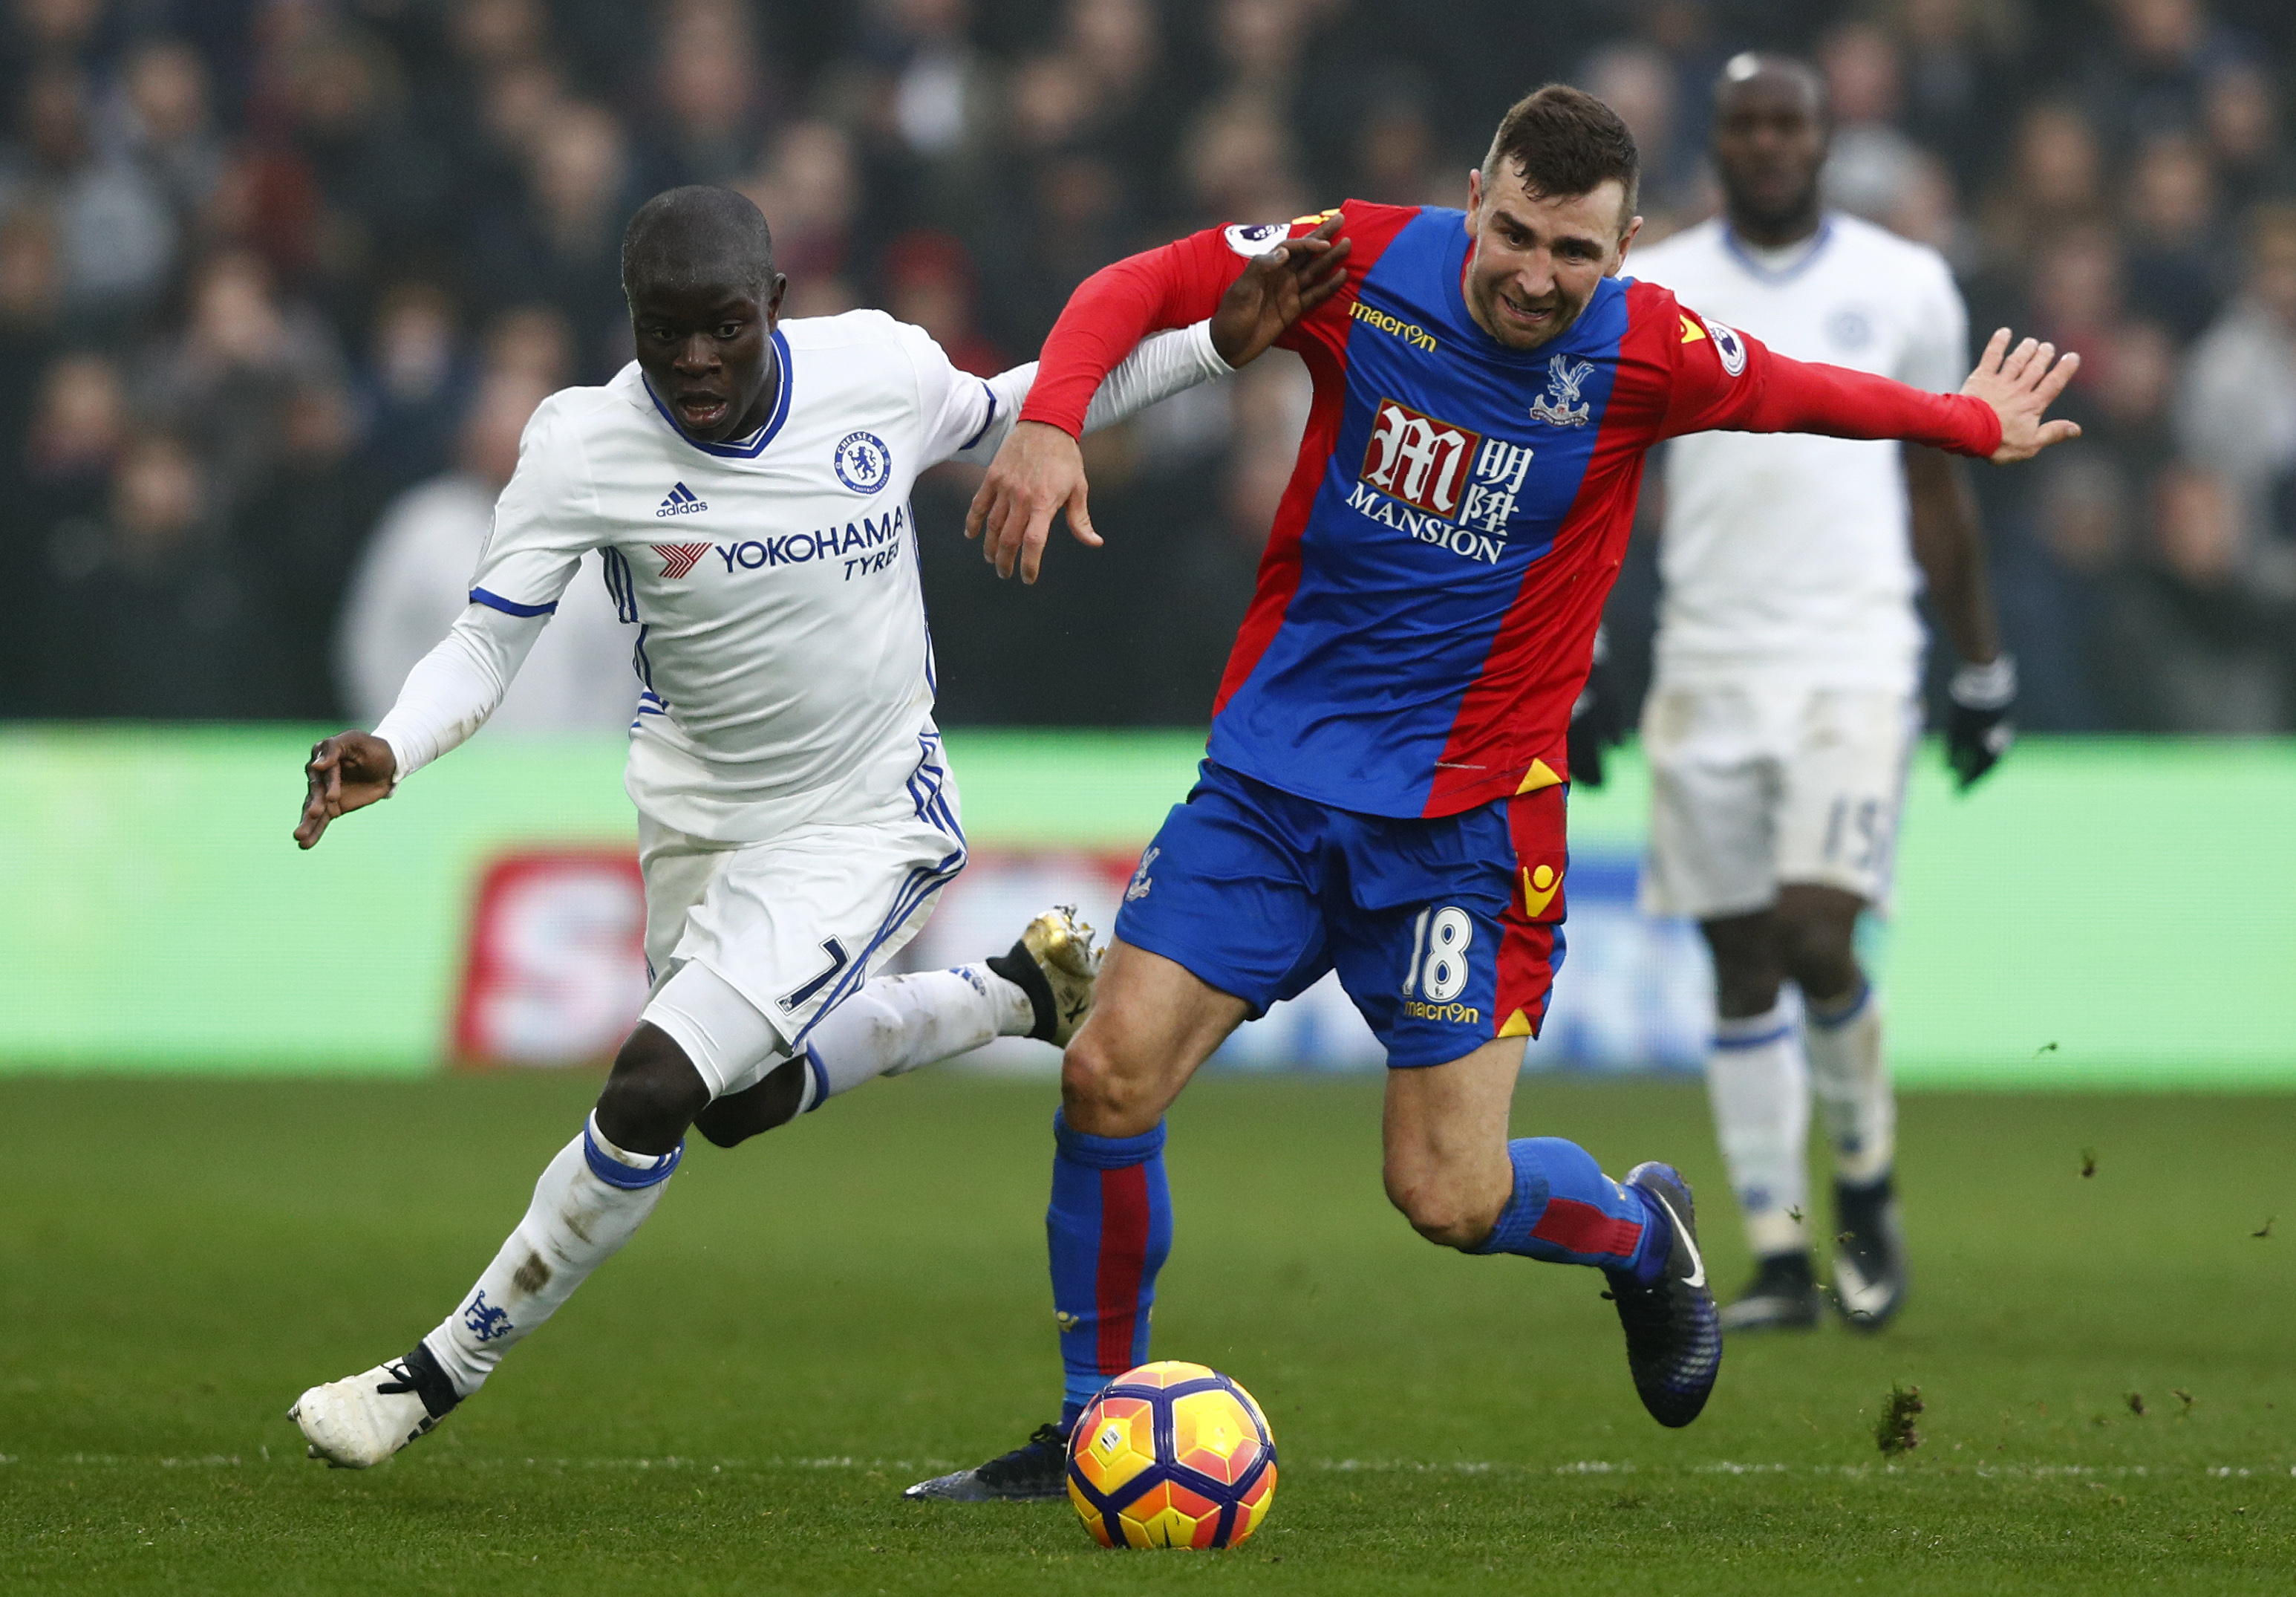 Alan Pardew singles out N'Golo Kante after Chelsea's victory over Crystal Palace